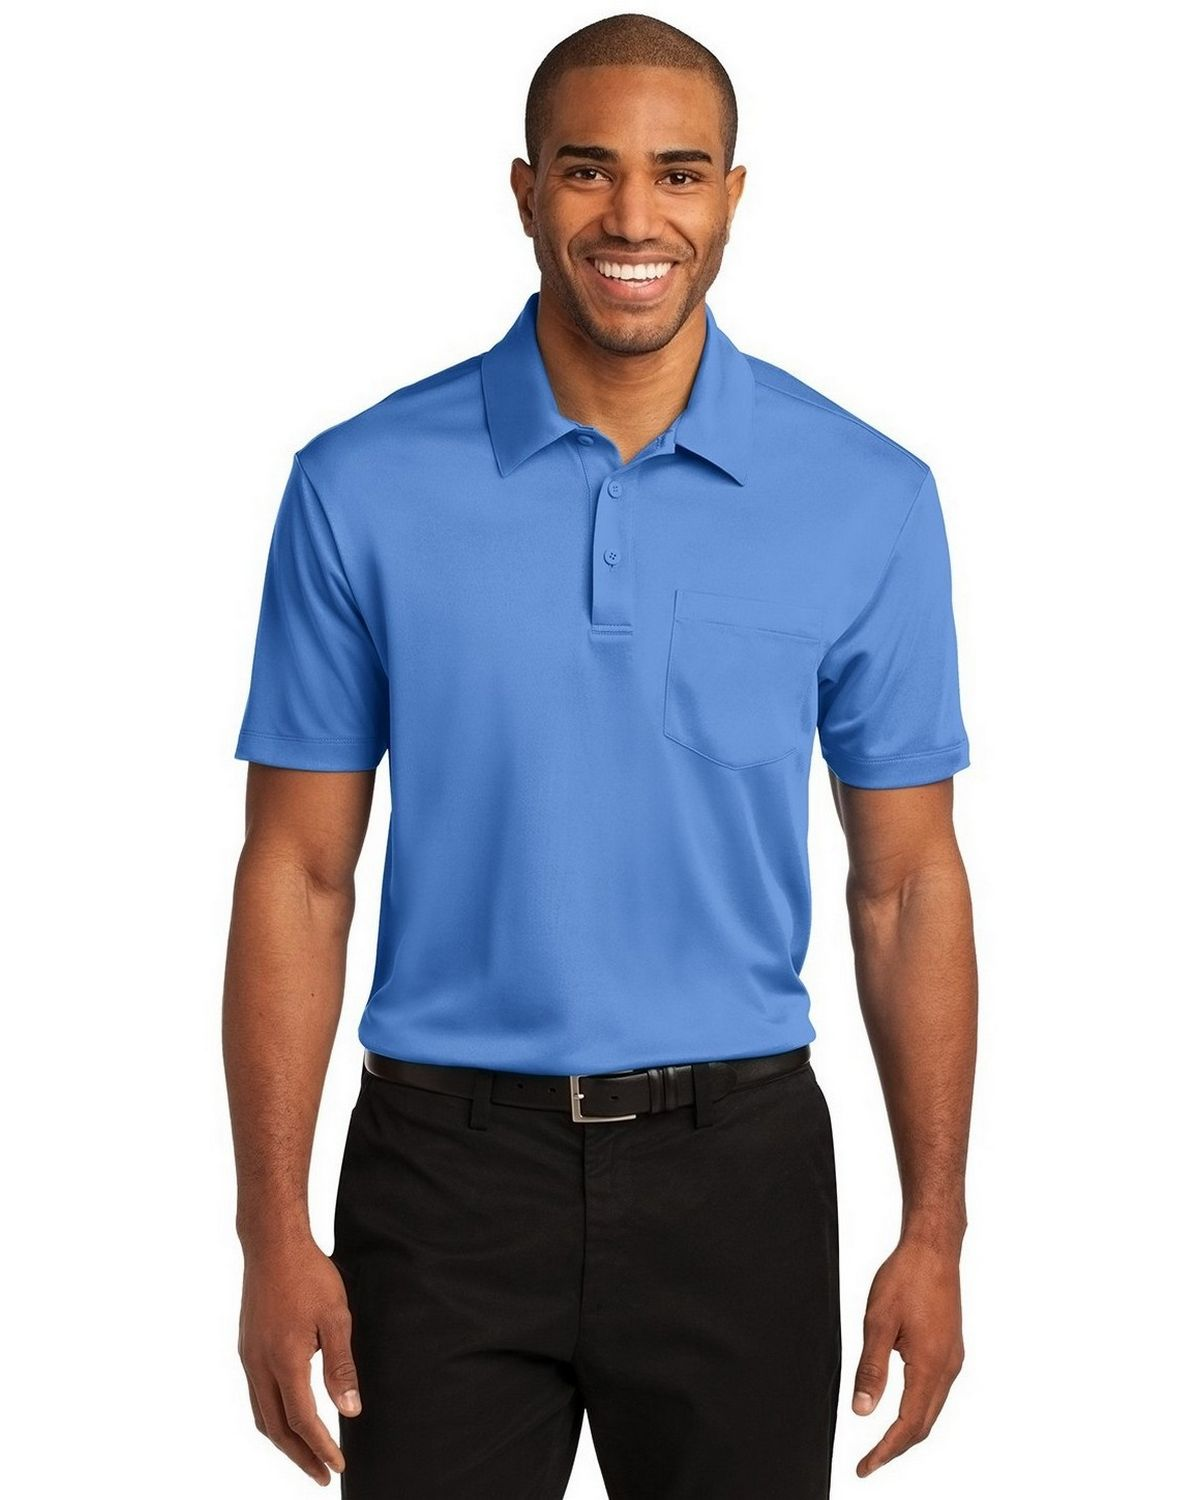 Port Authority K540P Men's Silk Touch Performance Pocket Polo - Carolina Blue - XS #silk